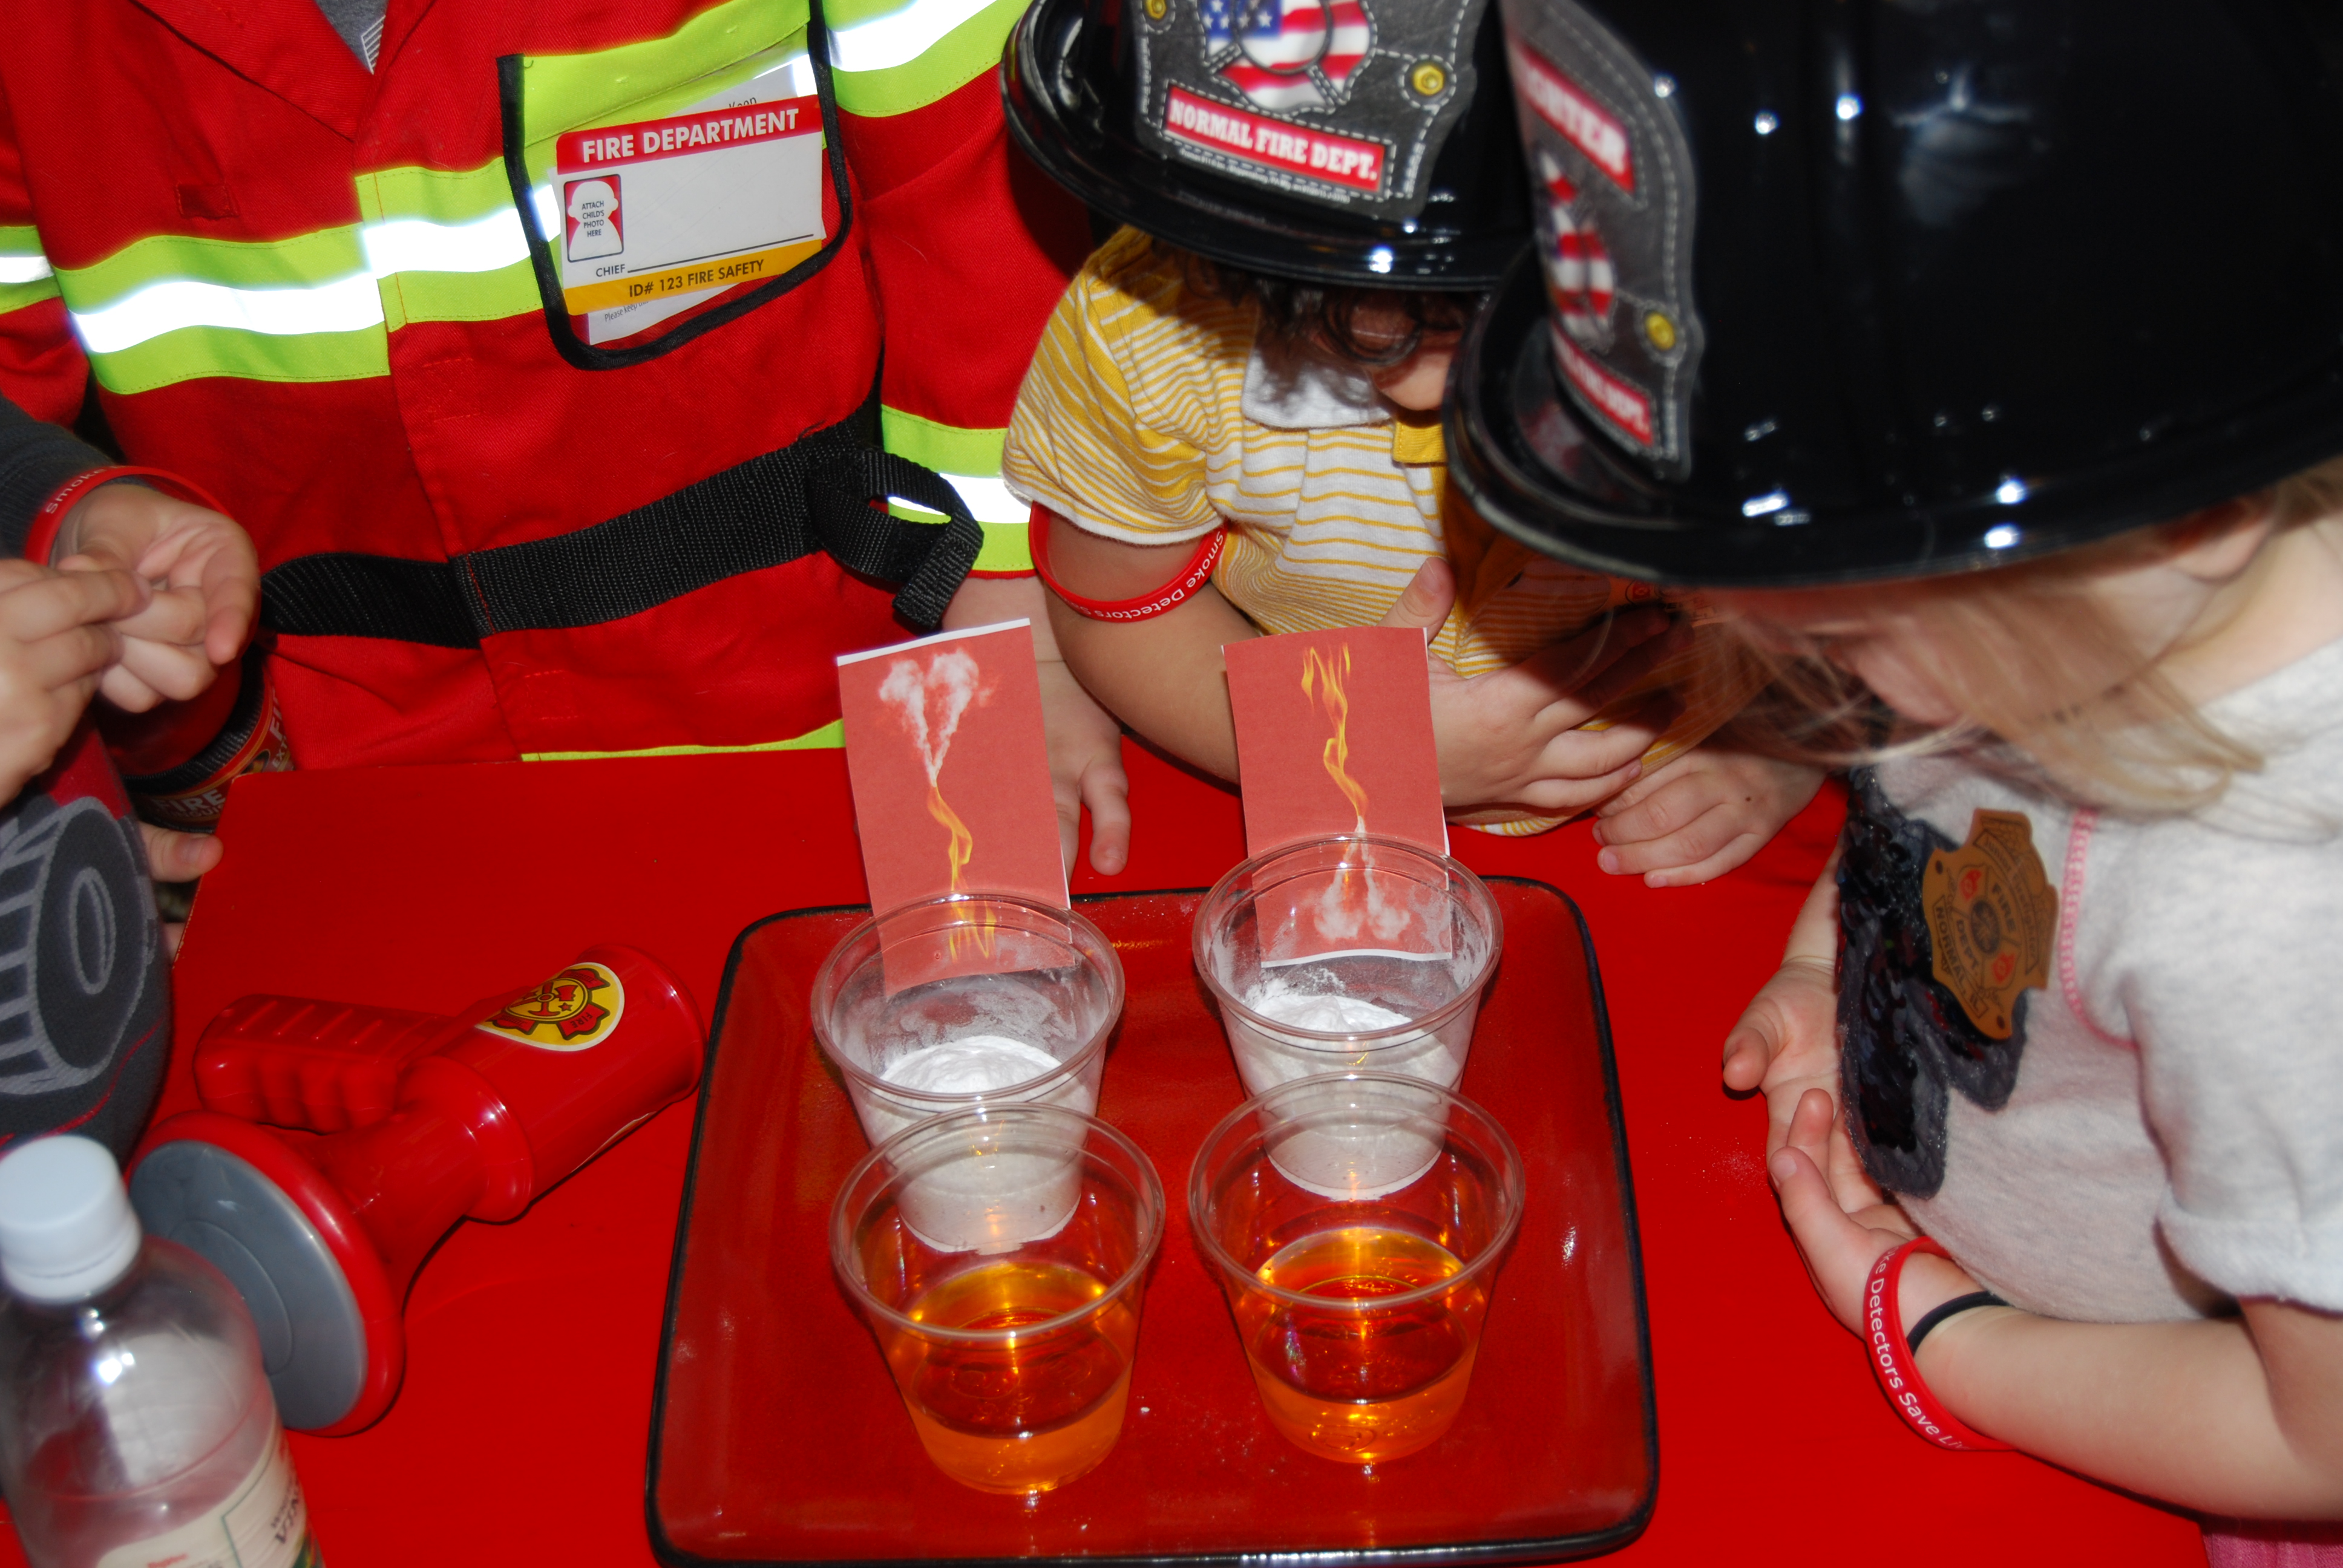 Community Helpers Theme For Preschool Bubbly Fires